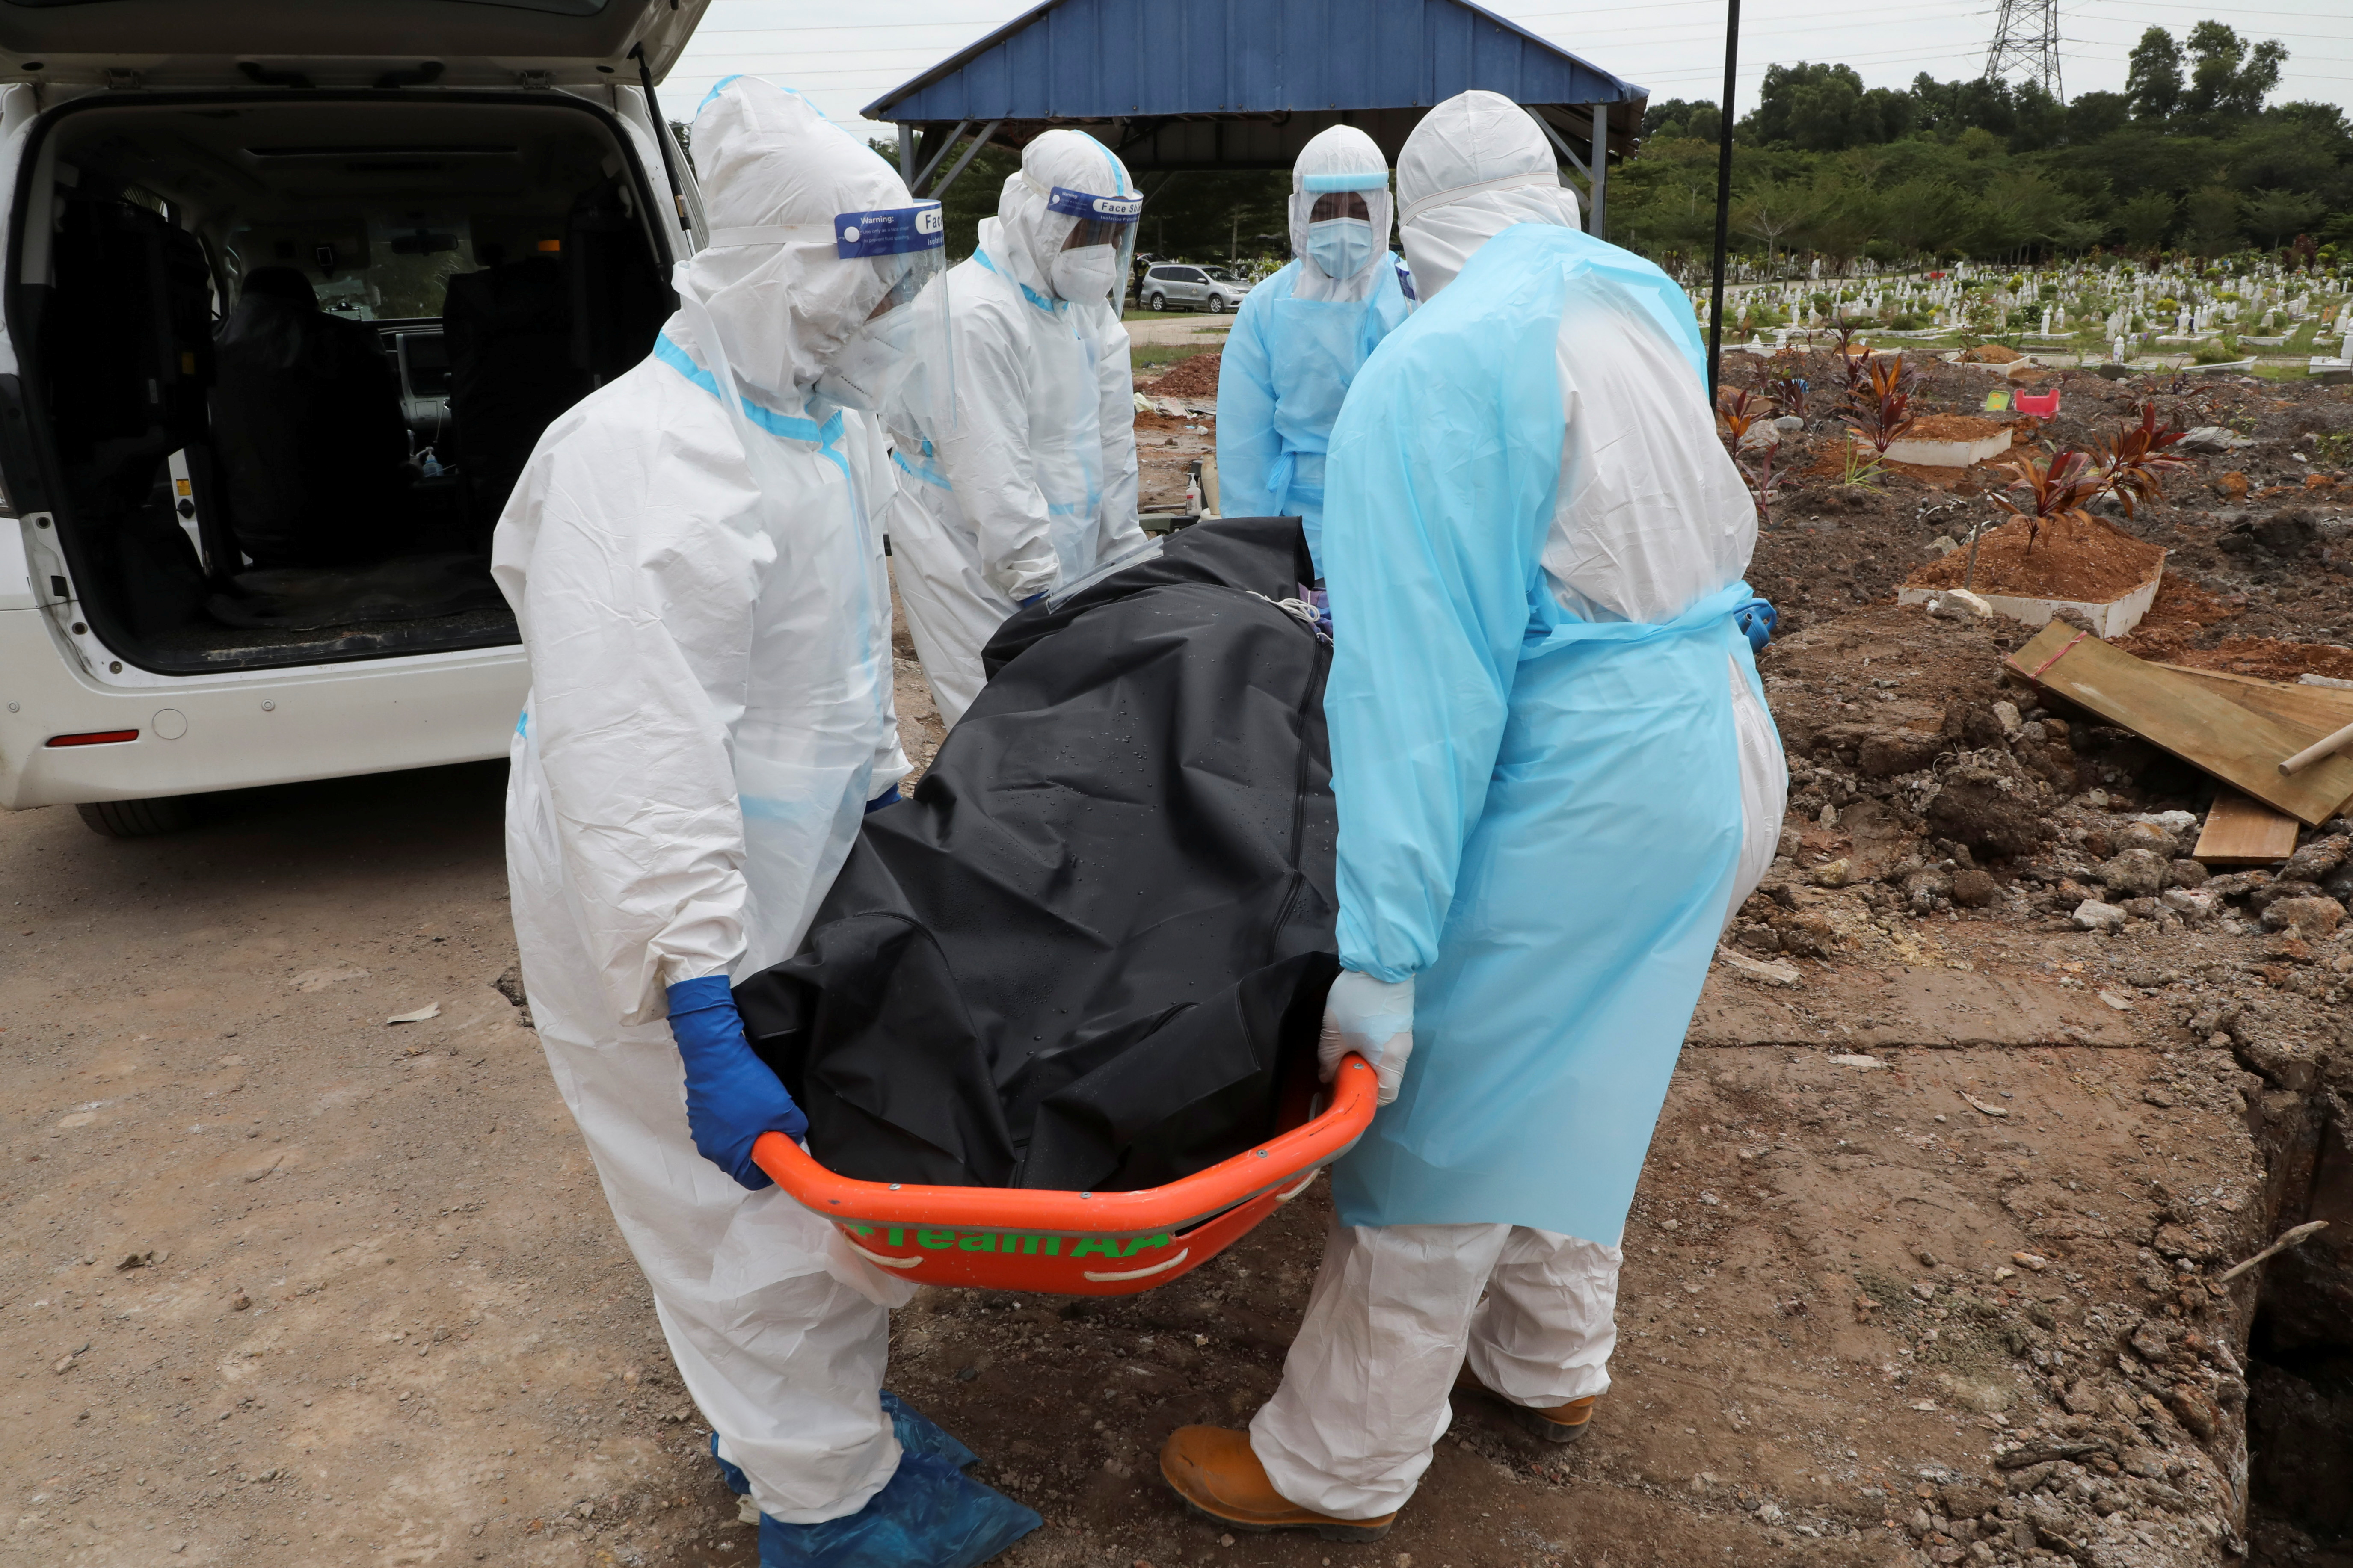 Cemetery workers wearing protective suits carry the body of a coronavirus disease (COVID-19) victim at a cemetery in Shah Alam, Malaysia, July 14, 2021. REUTERS/Lim Huey Teng